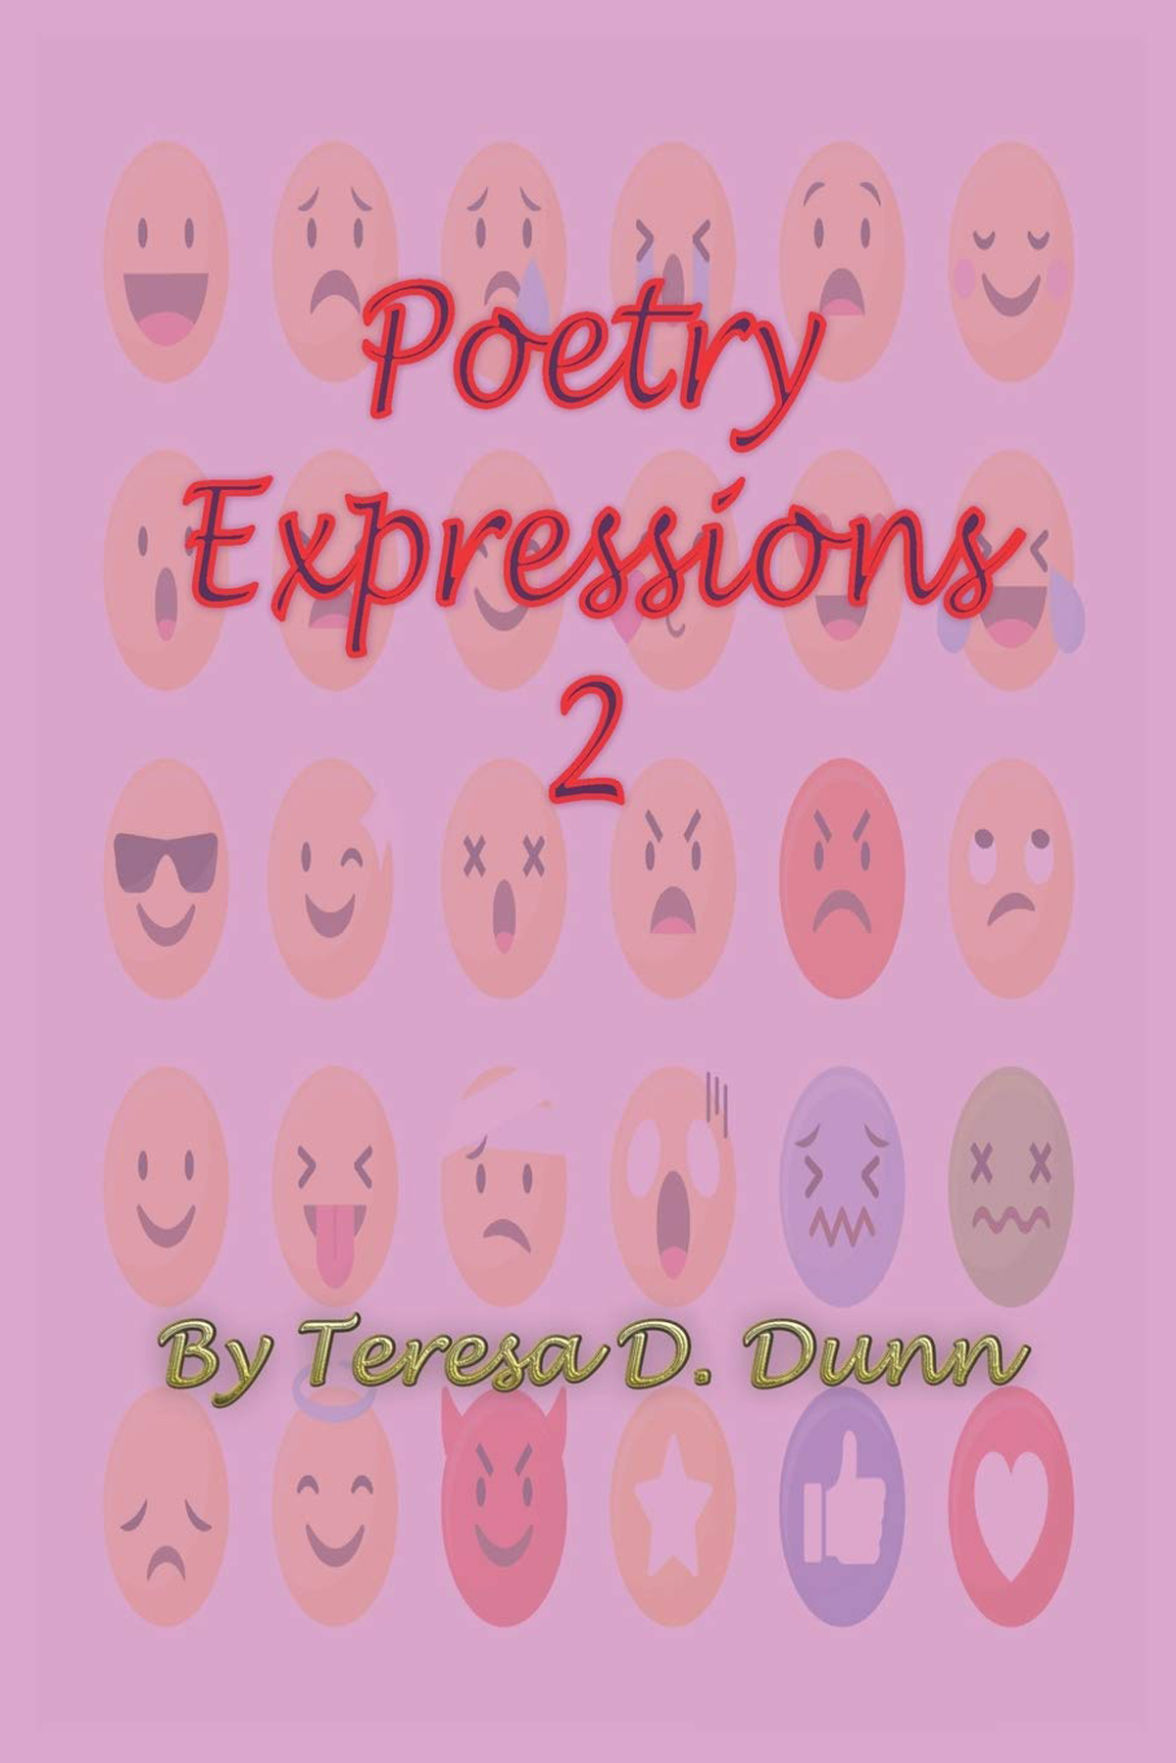 Poetry expressions 2 book cover